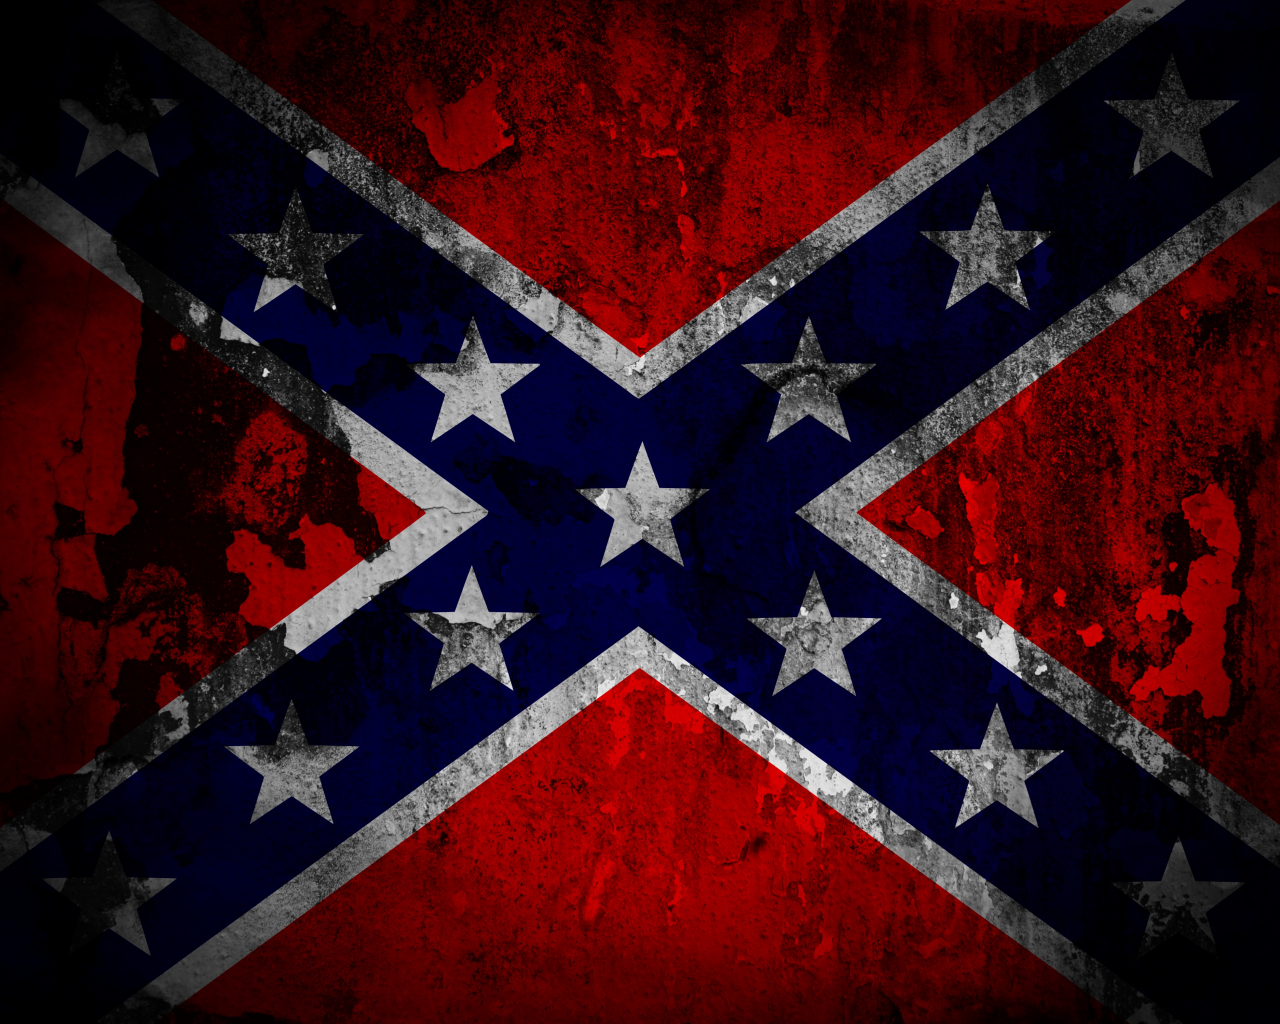 Free Download Rebel Flags Images 11 Cool Wallpaperizcom 3995x2996 For Your Desktop Mobile Tablet Explore 50 Confederate Flag Wallpaper For Iphone Confederate Flag Wallpaper Confederate Flag Wallpaper For Phone